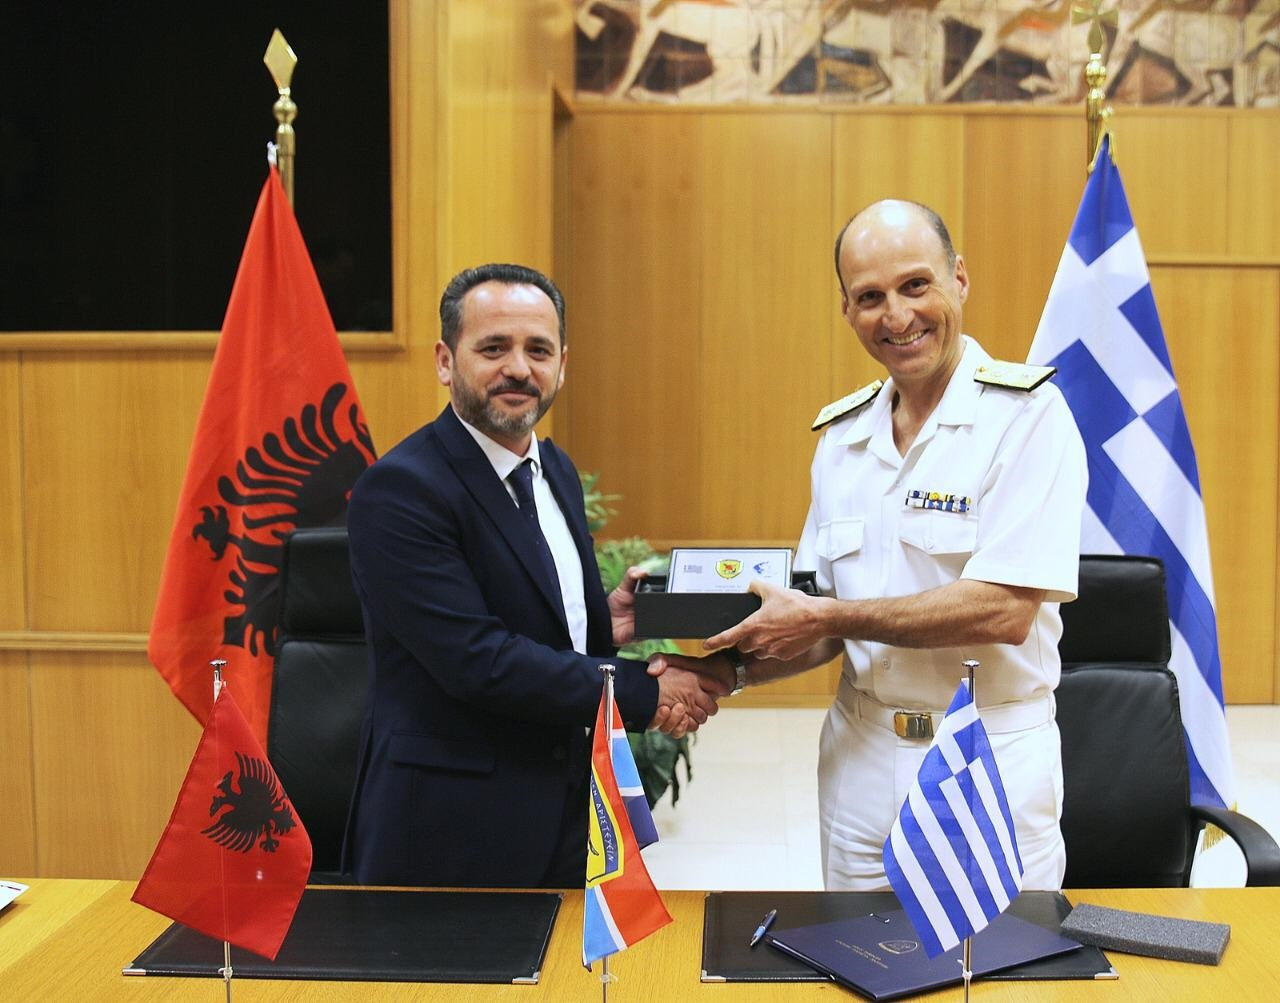 The Military Cooperation Program is Signed Between Albania and Greece